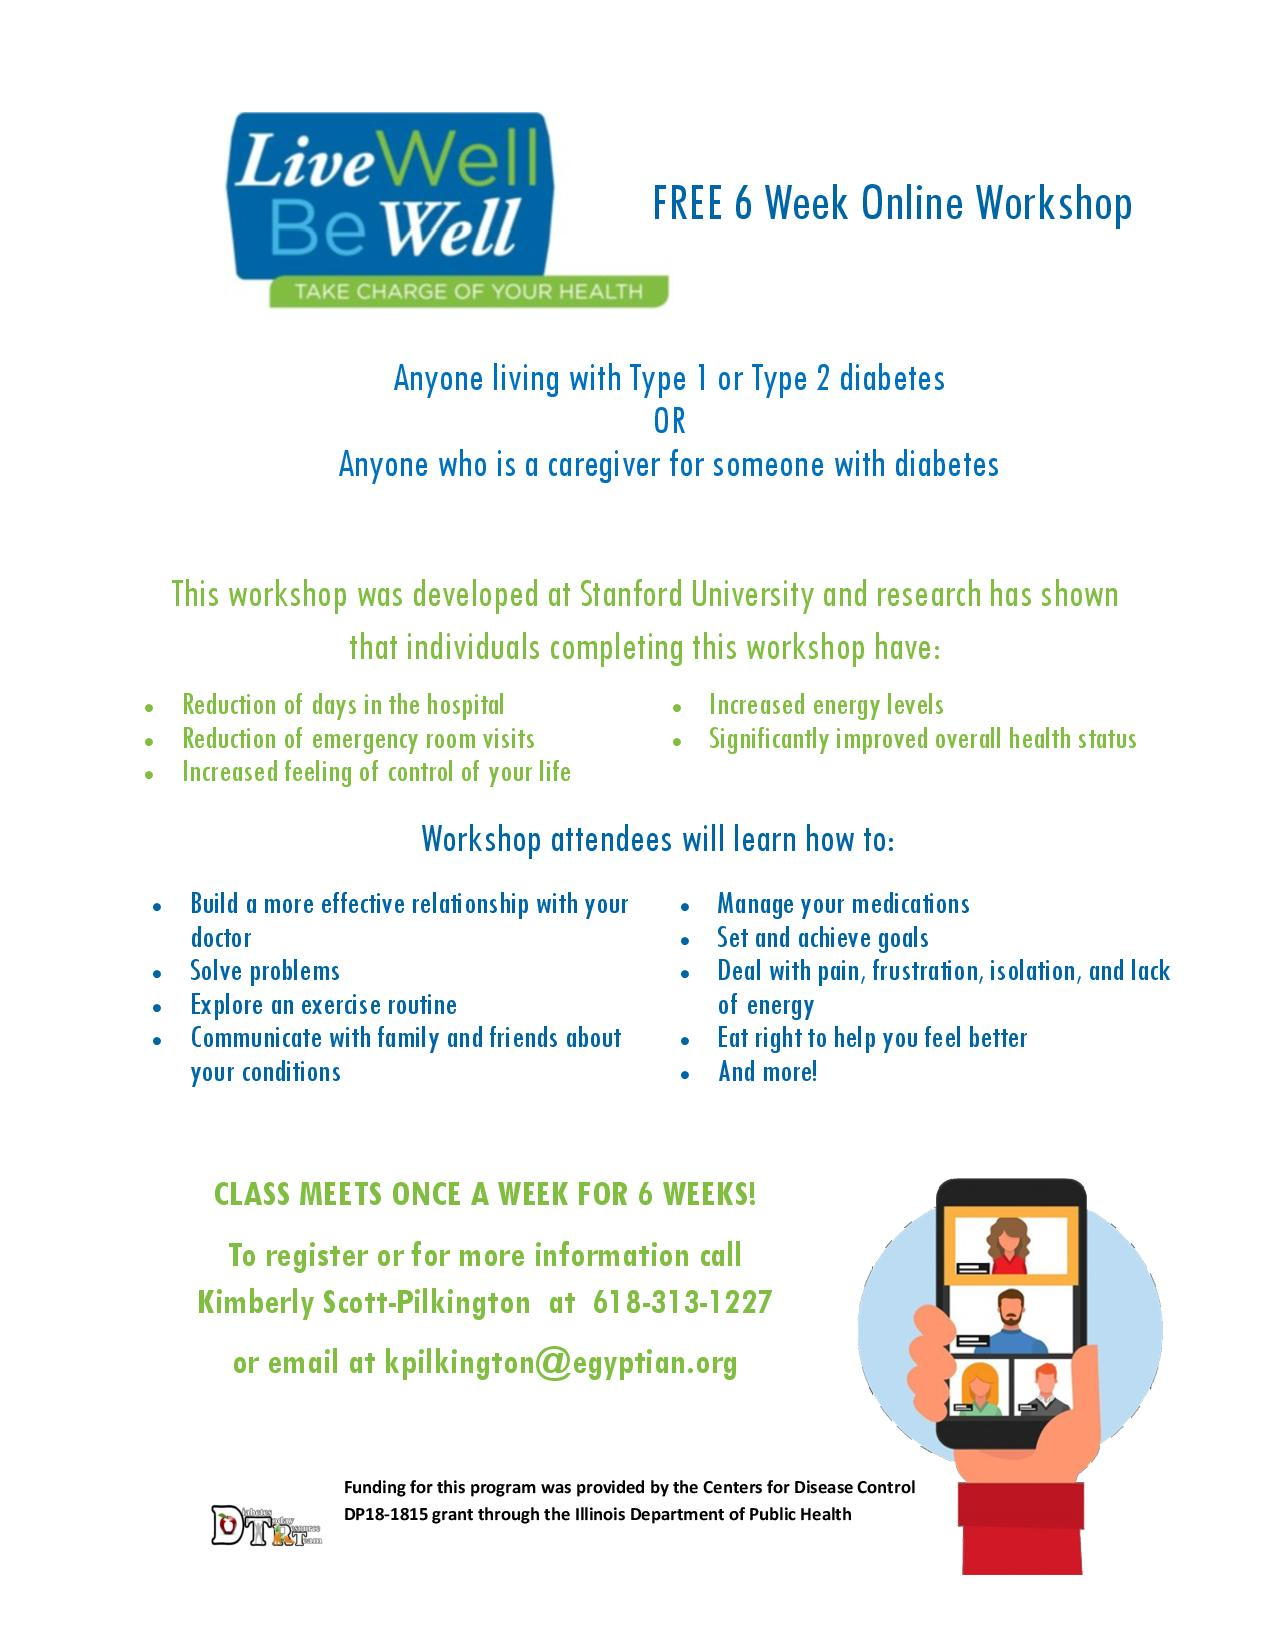 Egyptian Health Offering Free 6 Week Online Workshops; Live Well Be Well